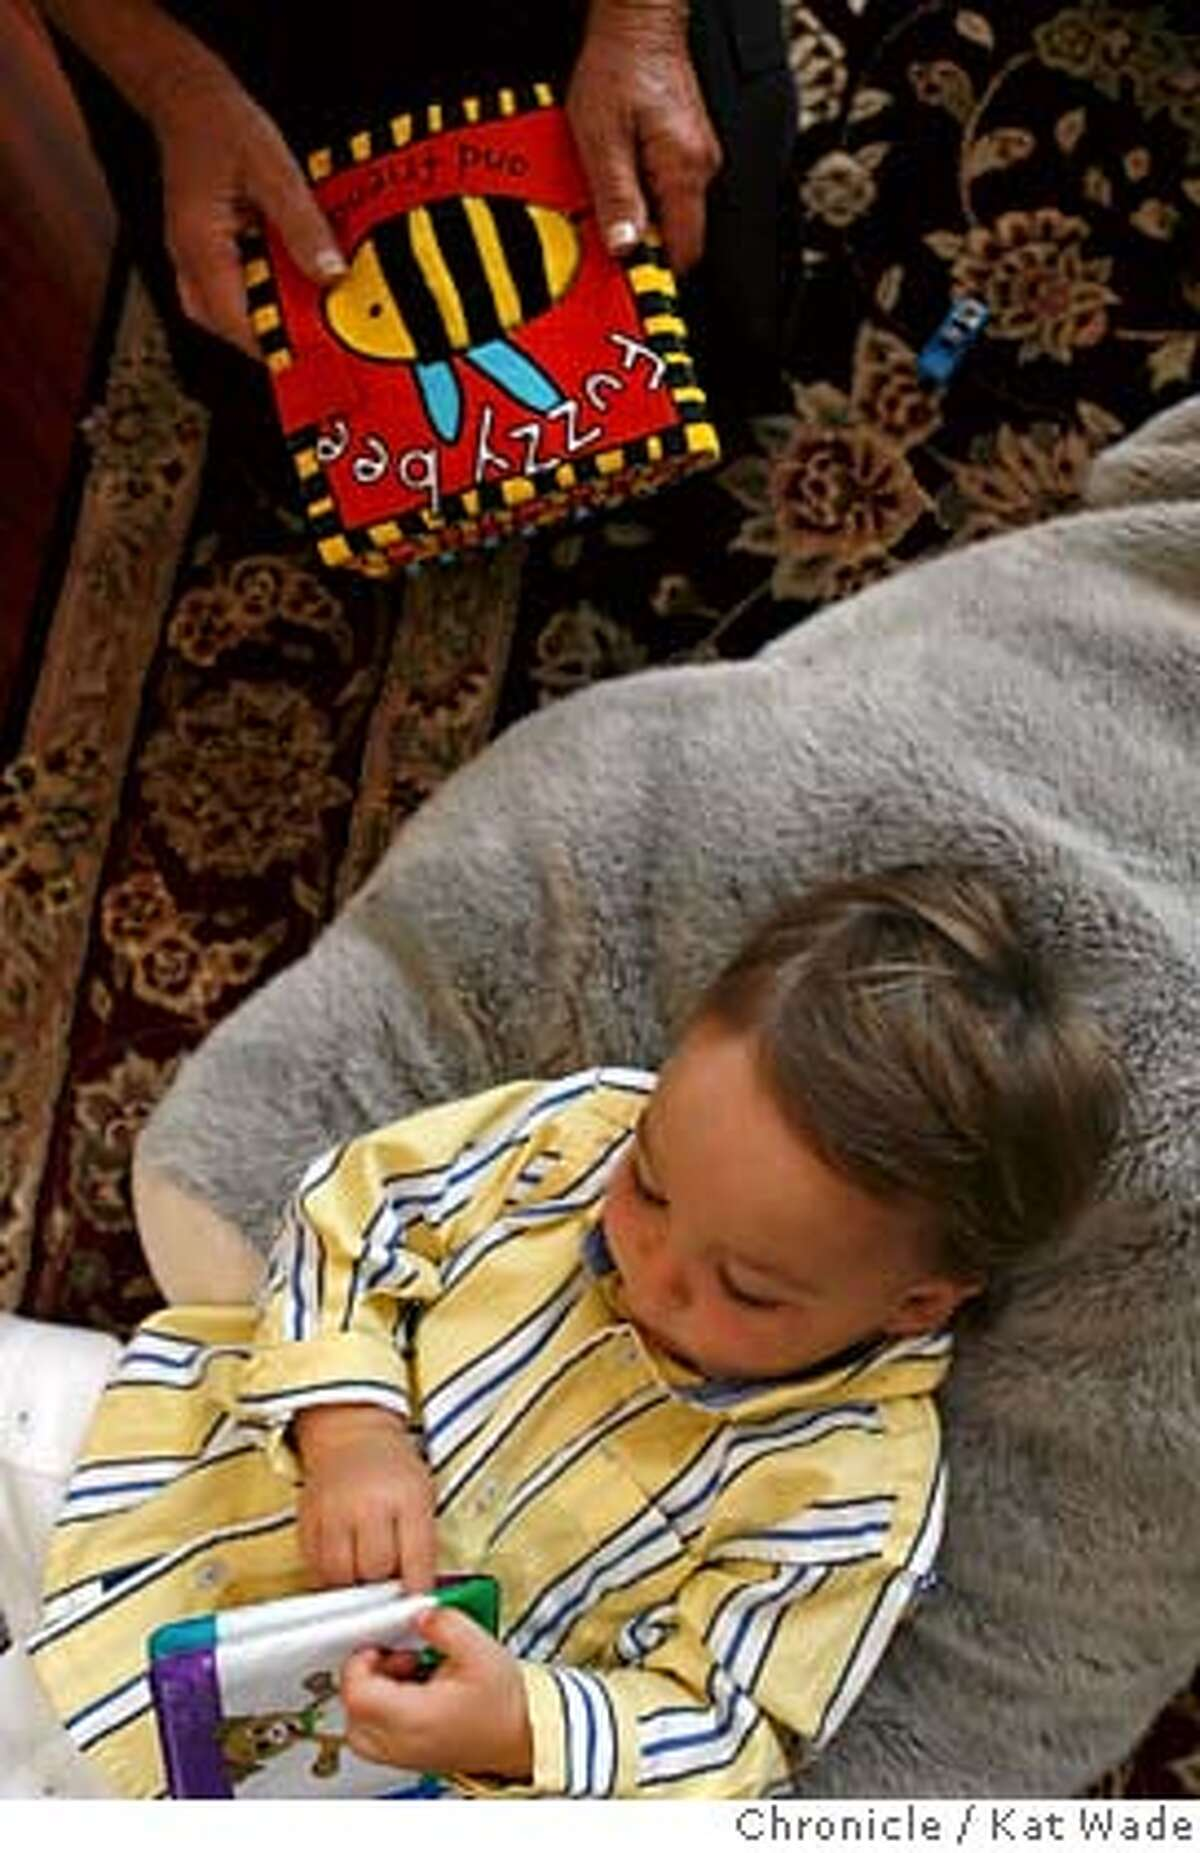 QUARRY_134_KW_.jpg On Wednesday August 16, 2006 (TOP) Kit Cole (HANDS ONLY) reads with her 18-month-old son Nathaniel